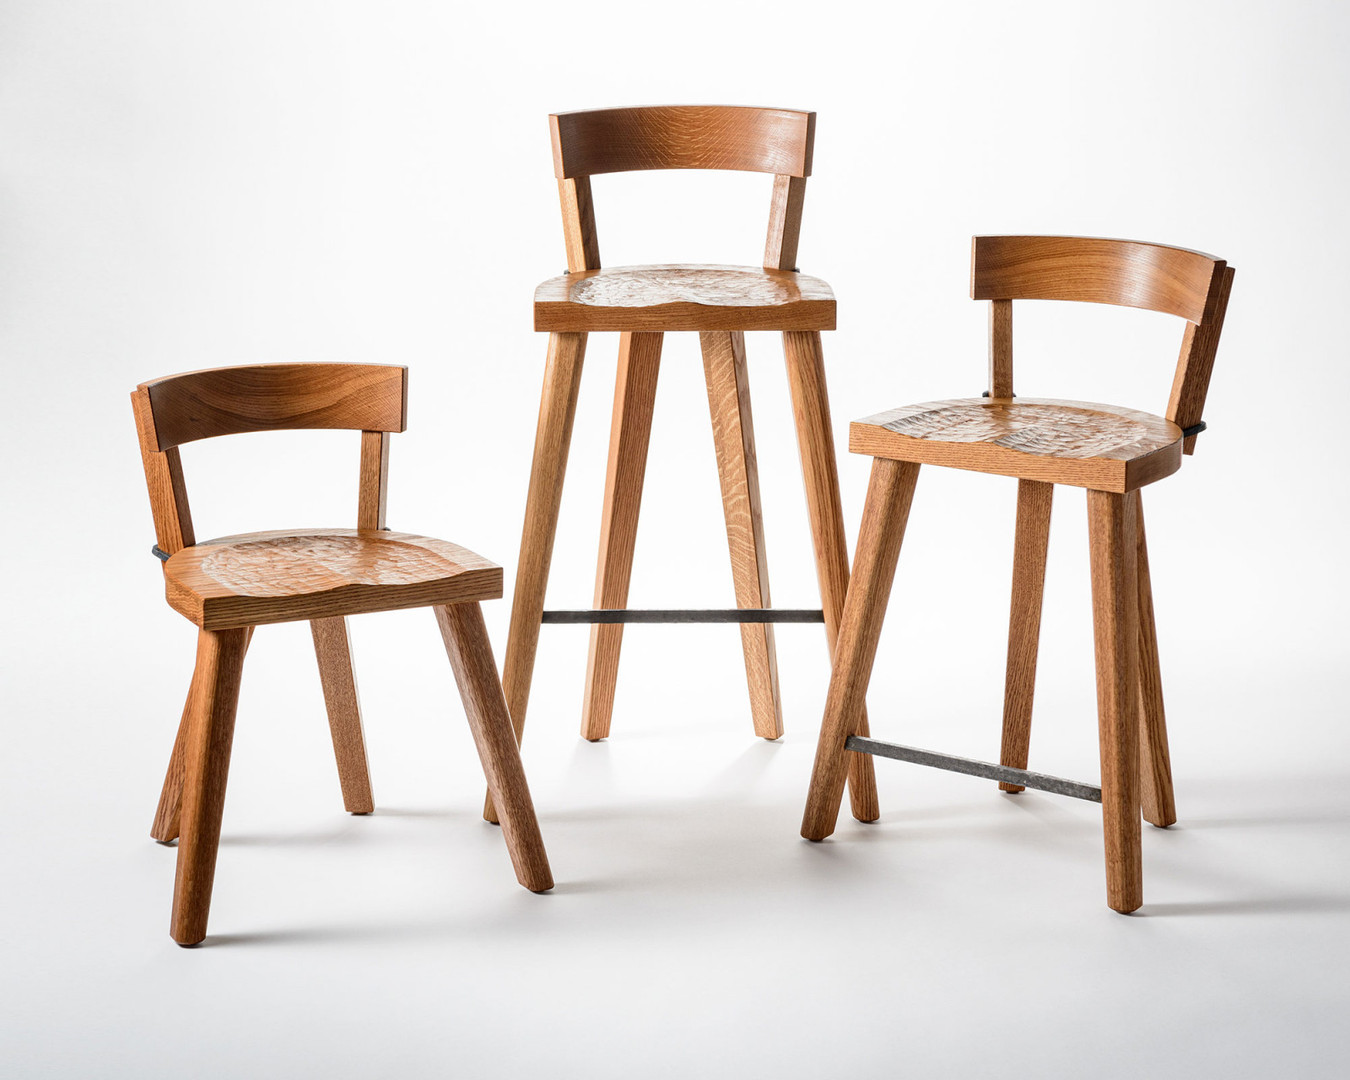 The Marolles Chair and Stools